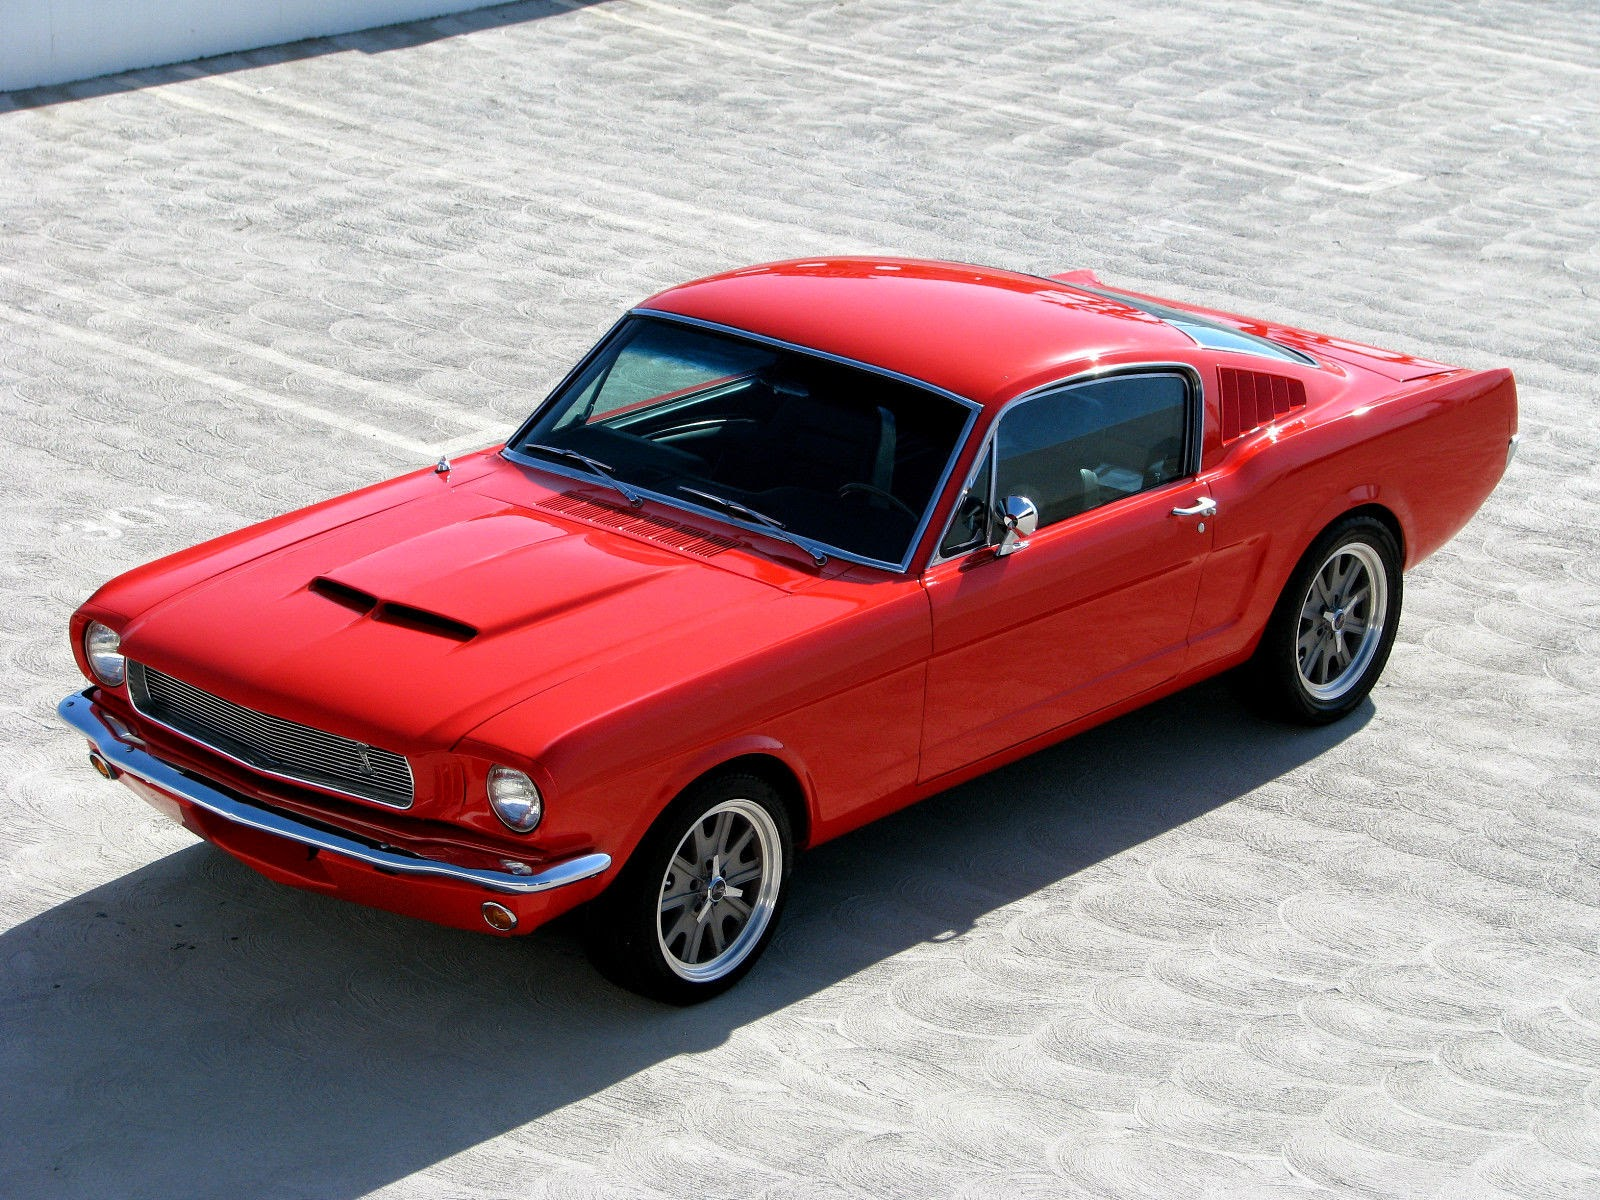 Resto Mod Cars For Sale: 1965 Ford Mustang Fastback Resto-Mod Paxton Supercharger